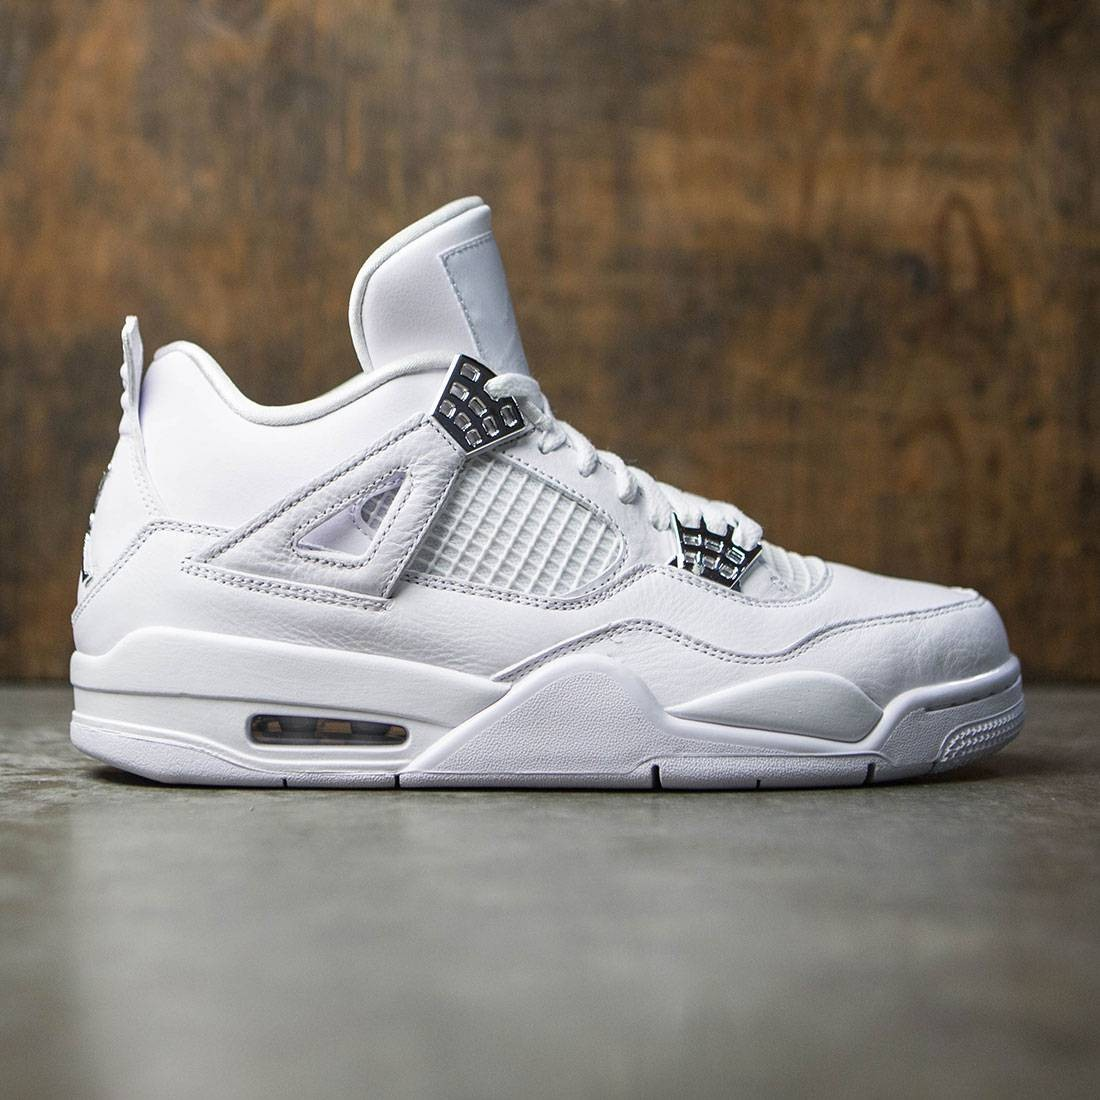 separation shoes 8d0a3 5fe75 jordan men air jordan 4 retro white metallic silver pure platinum